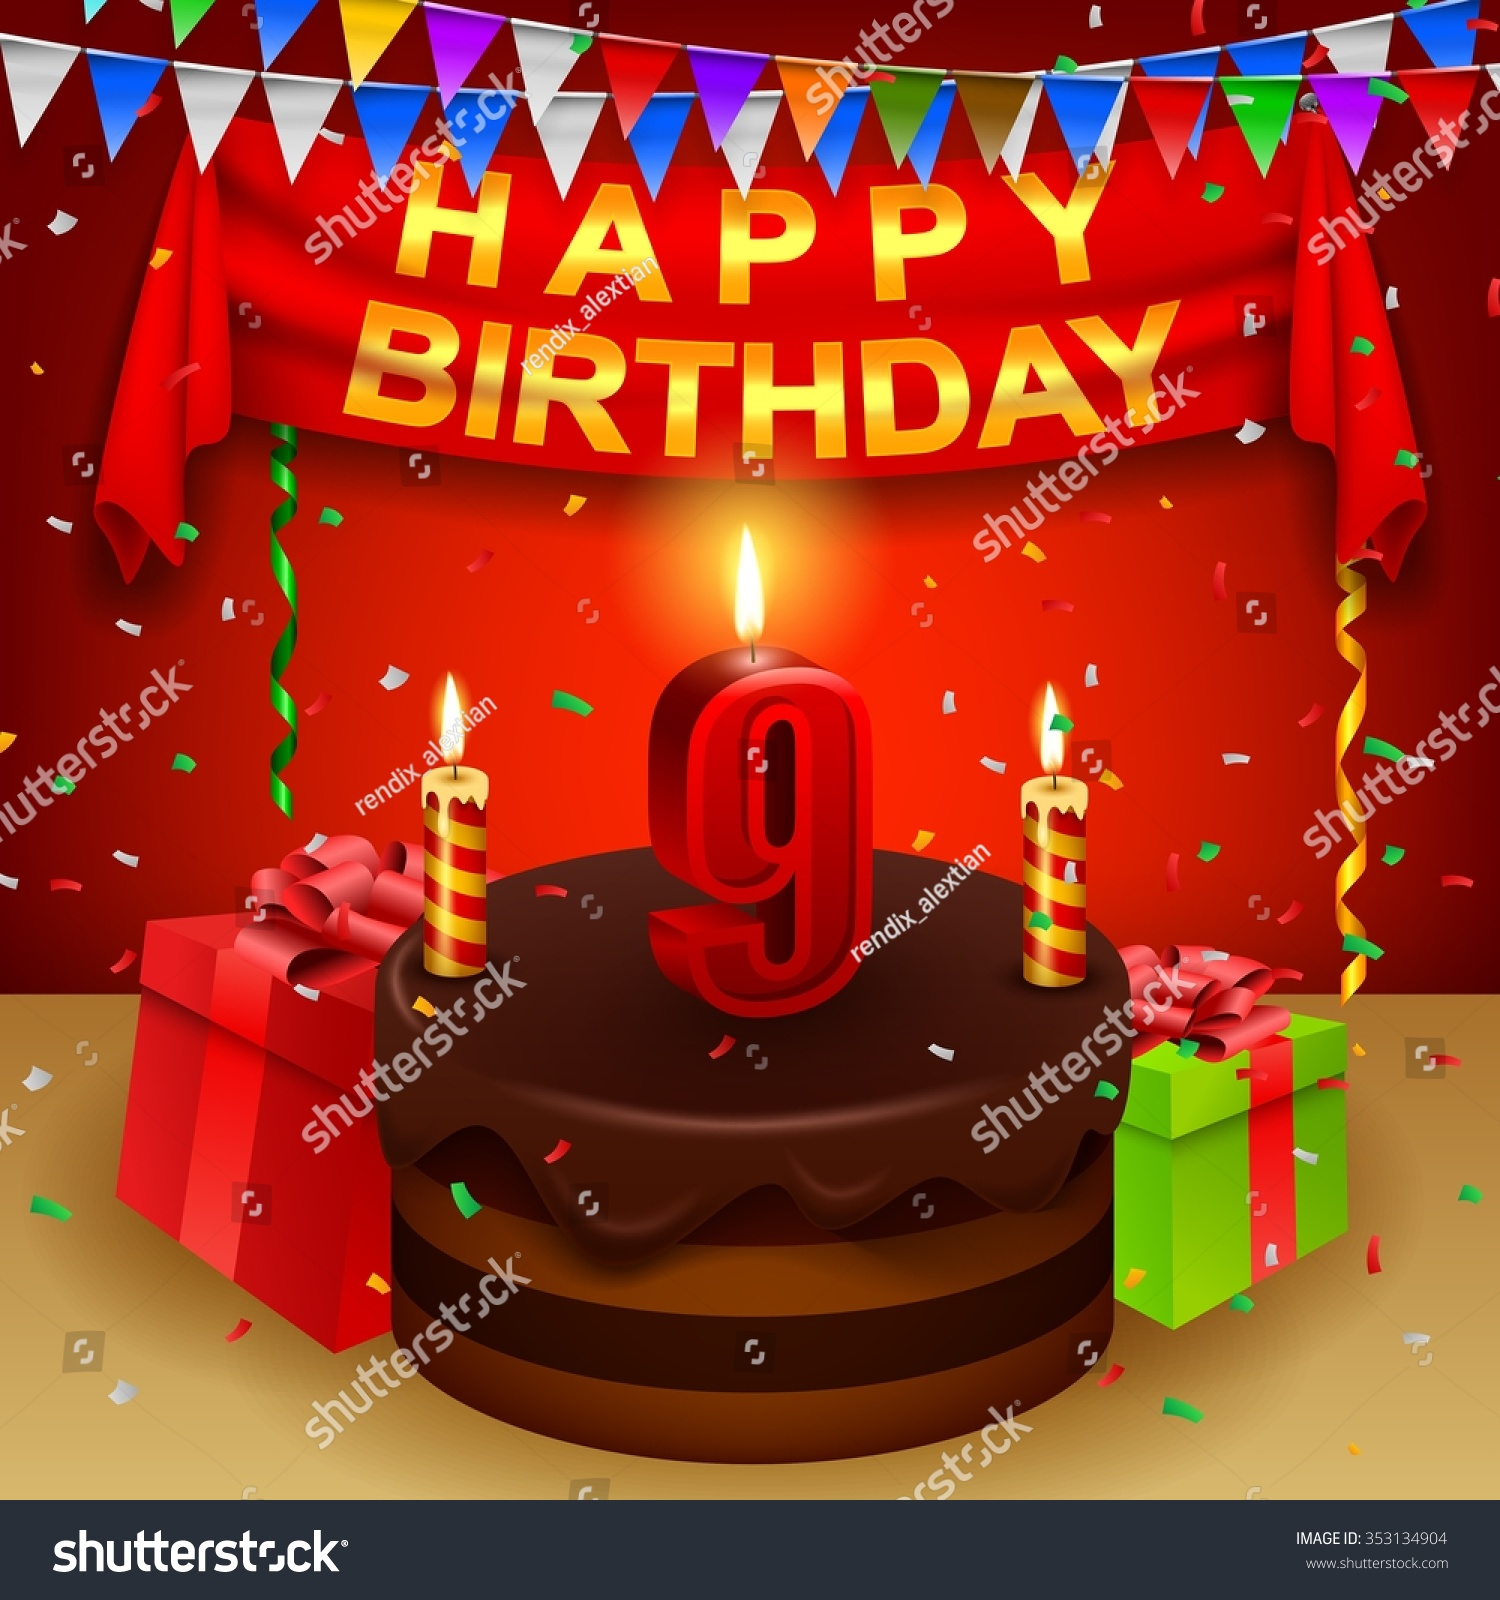 Happy 9th Birthday Chocolate Cream Cake Stock Vector